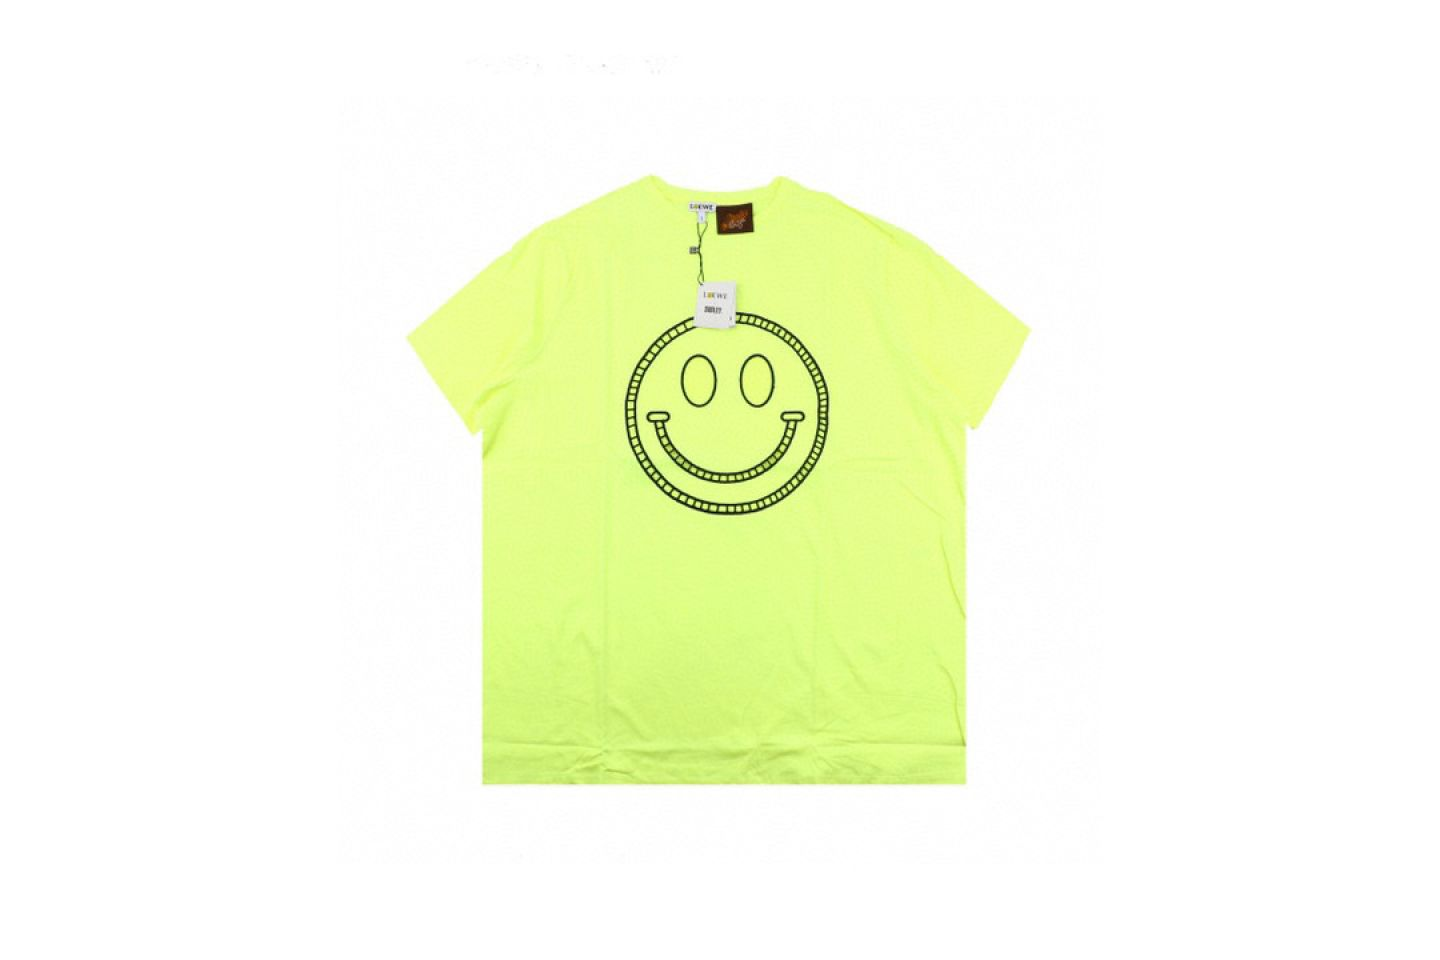 Shirt LOEWE x SMILEY 20ss fluorescent smiley short sleeve T-shirt yellow 1 loewe_x_smiley_20ss_fluorescent_smiley_short_sleeve_t_shirt_yellow_1